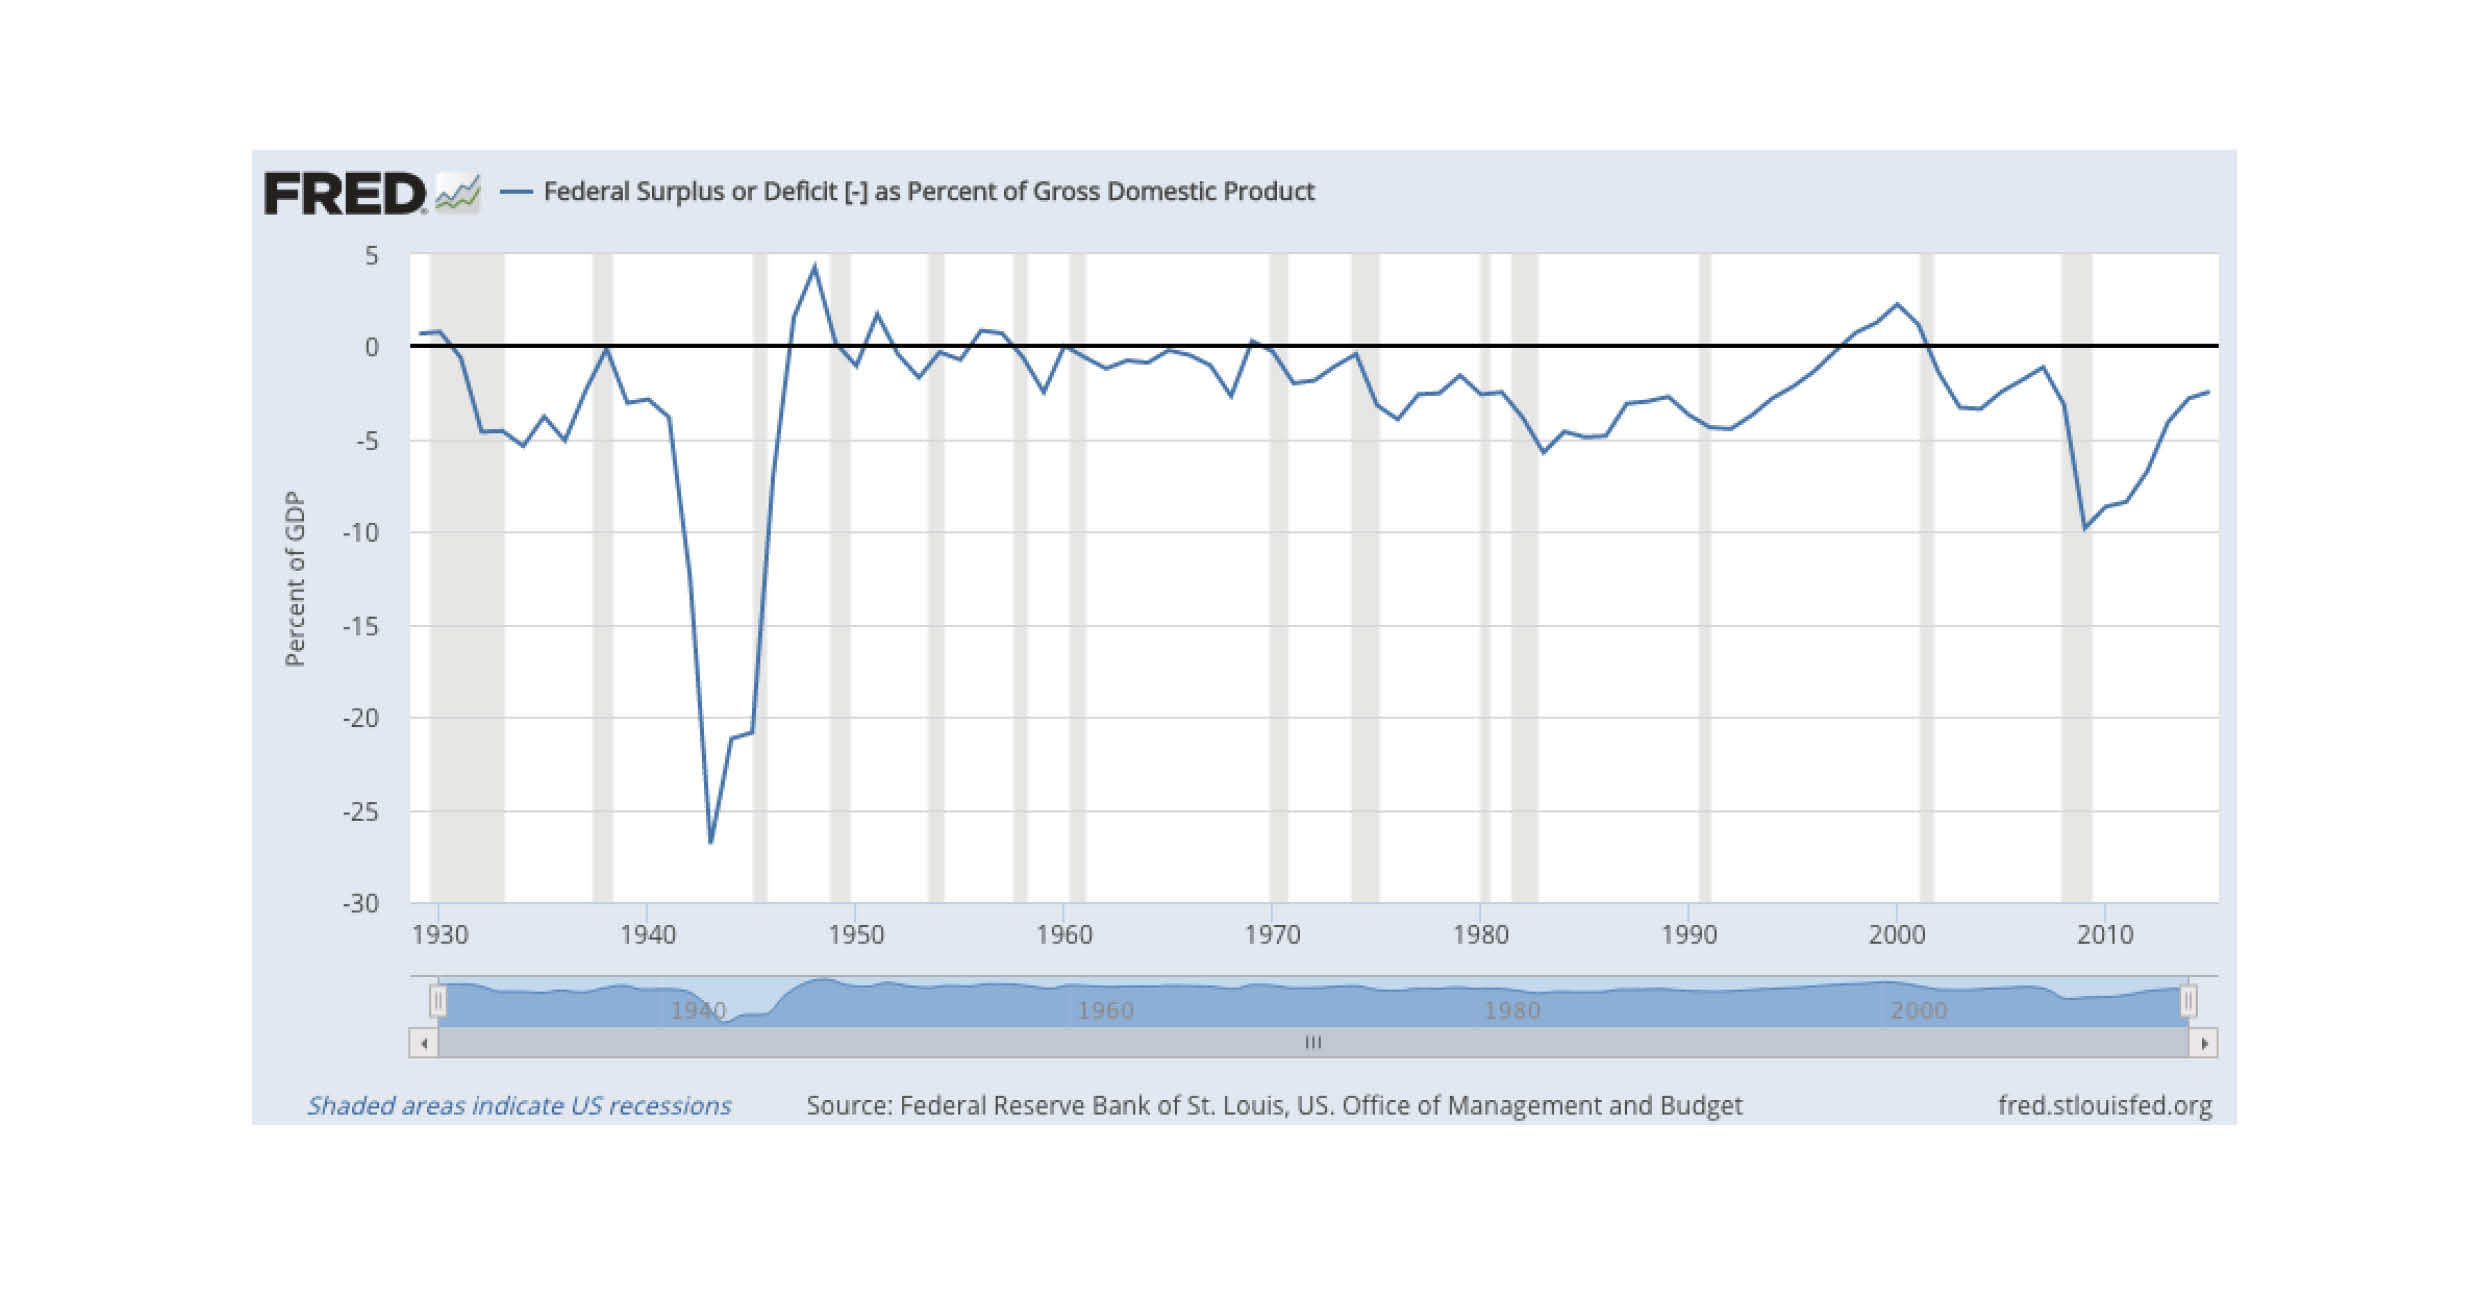 Taxes up, deficits down